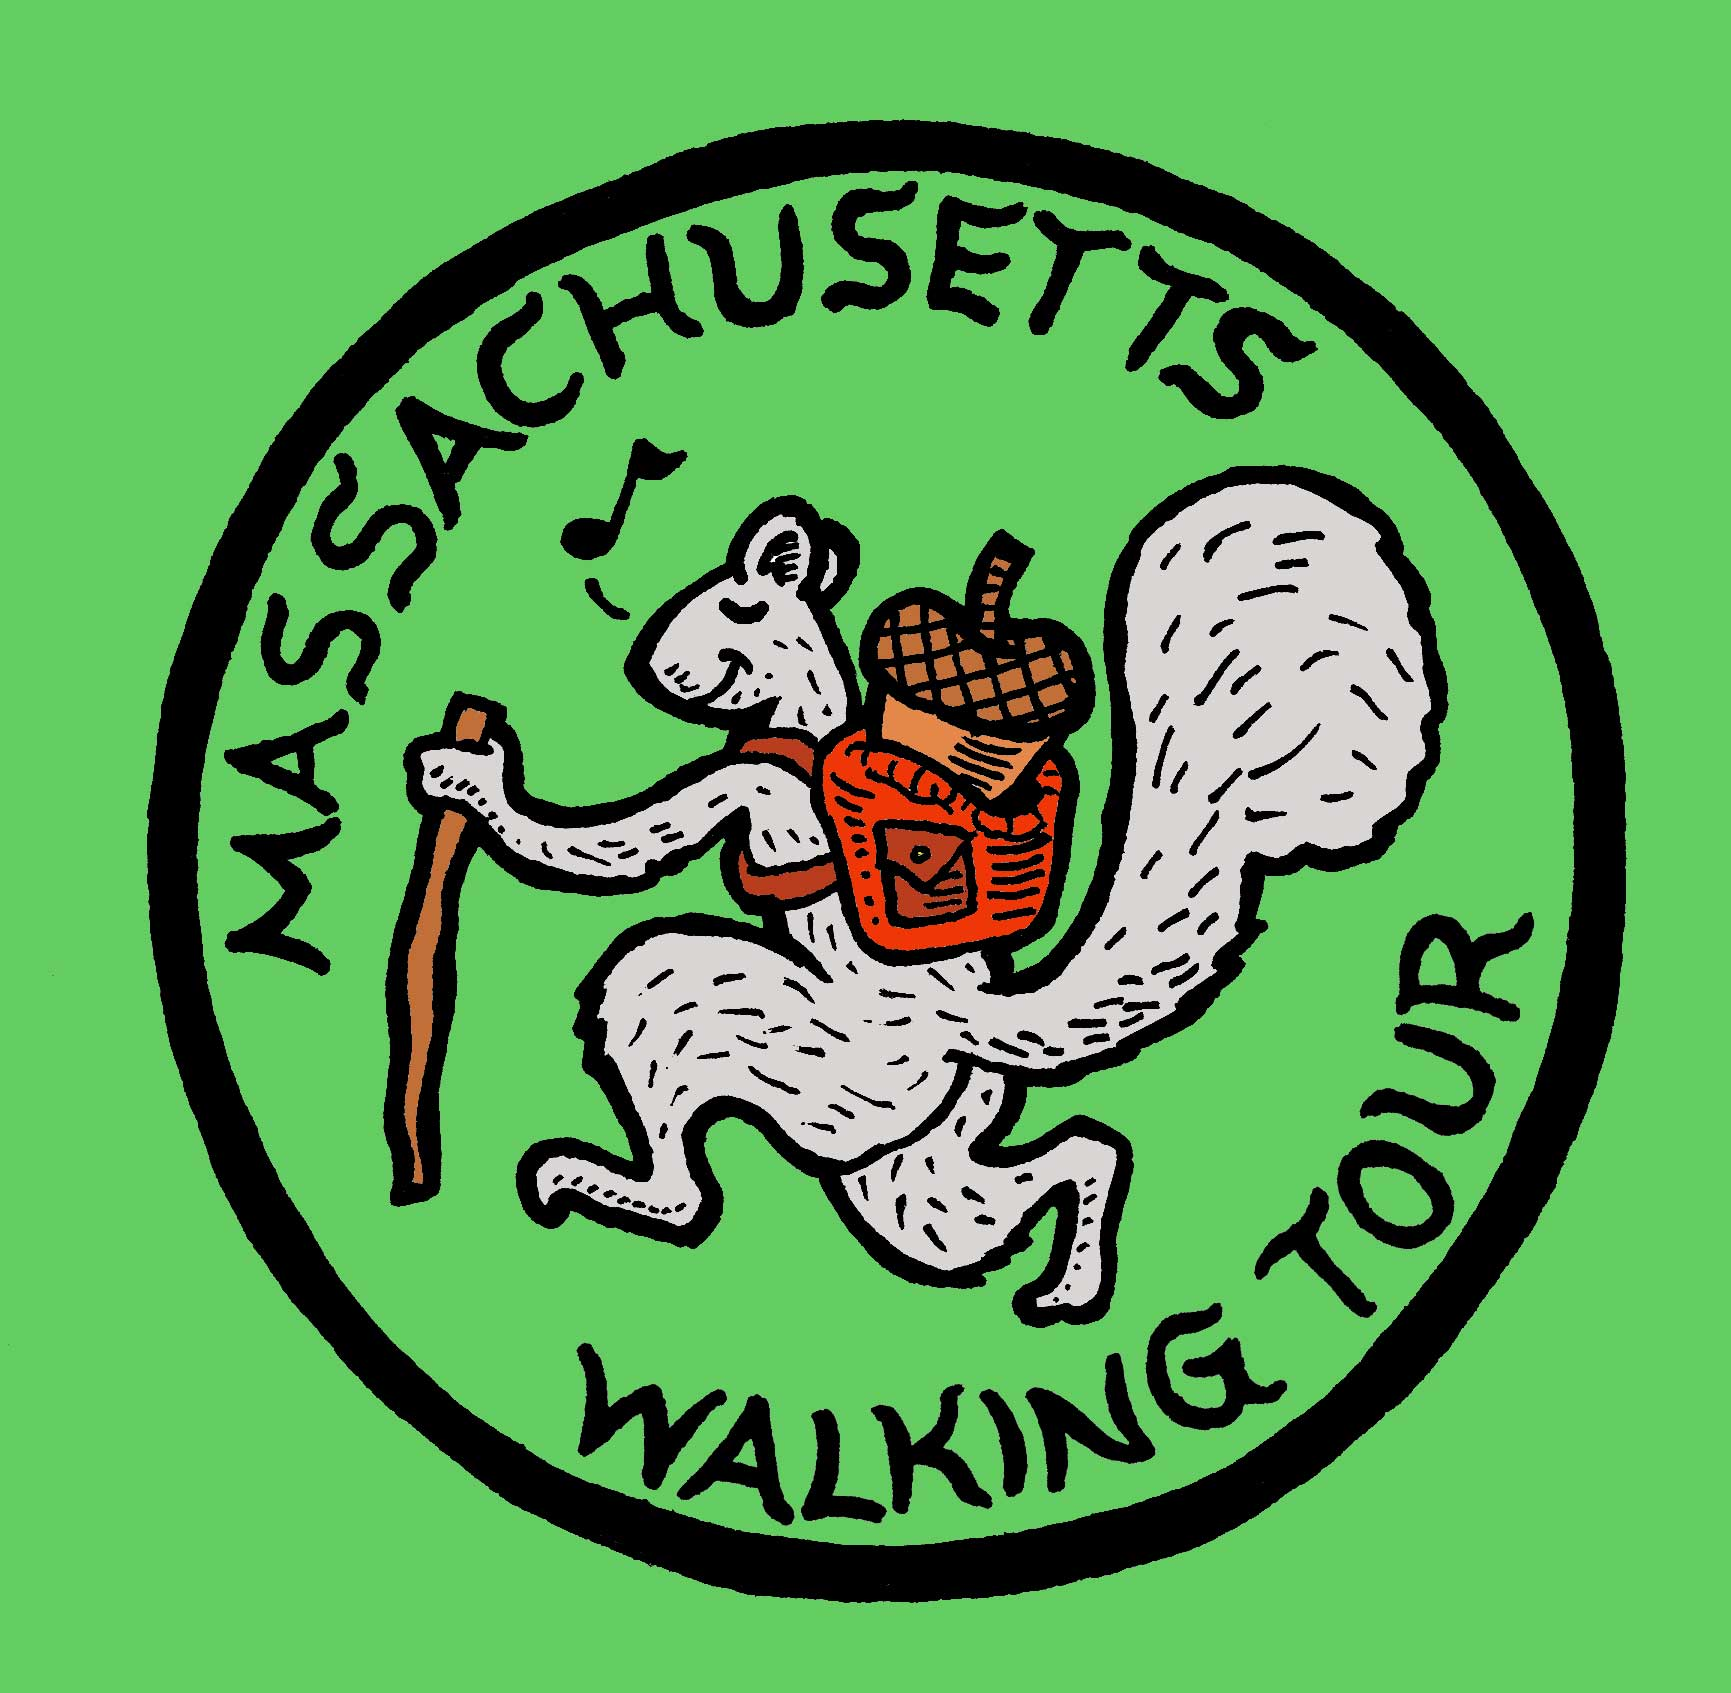 massachusetts walking tour logo